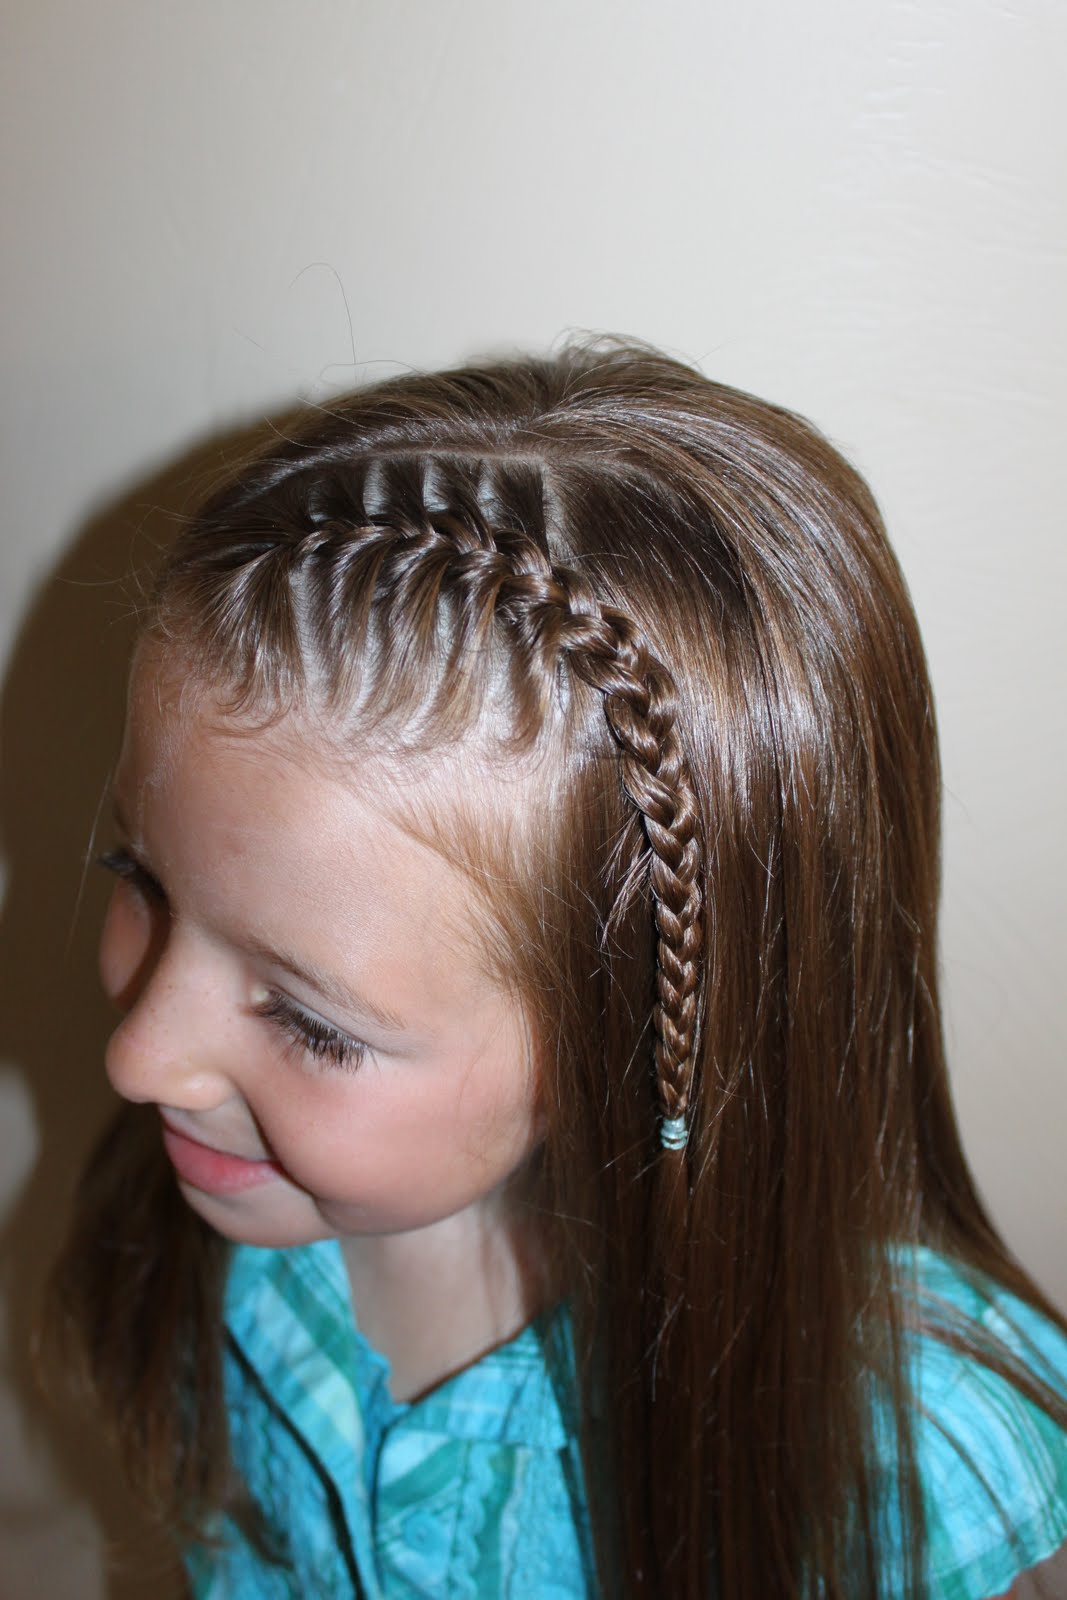 Braided Bangs Hairstyles Hairstyles For Girls The Wright Hair Braided Bangs 1